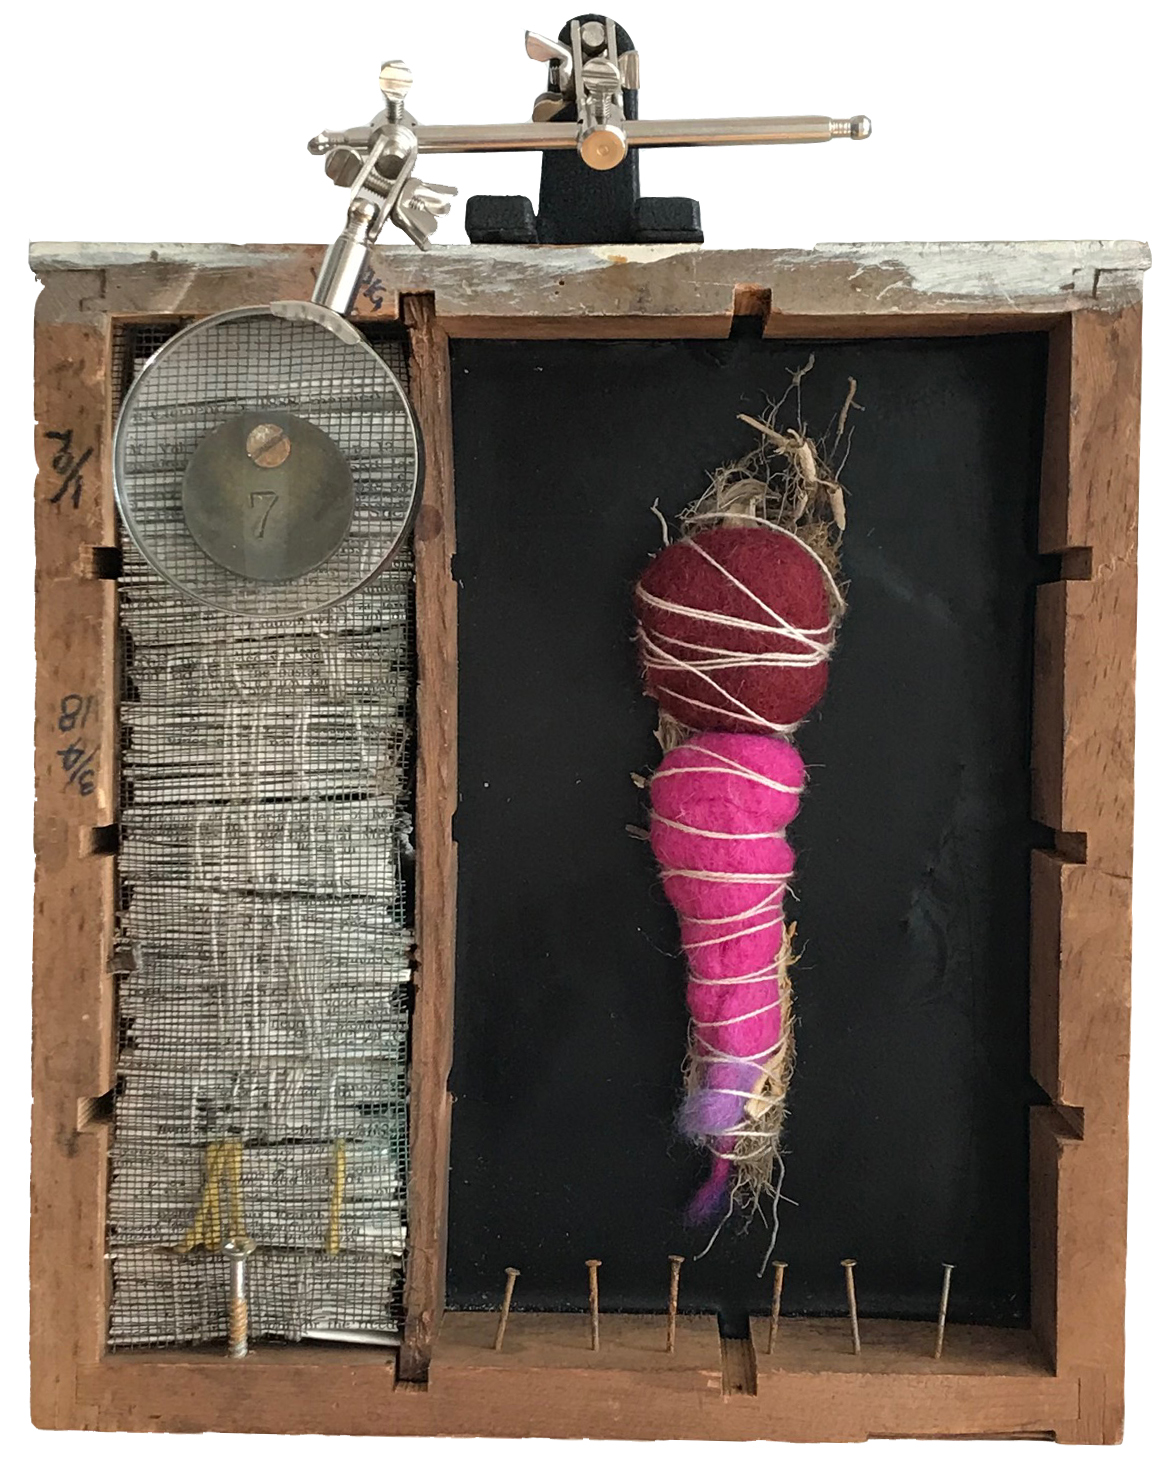 Singing in Defiance of the Rules  Wood, paper, metal, wool, seaweed, encaustic, found objects Robin Howard - 2017